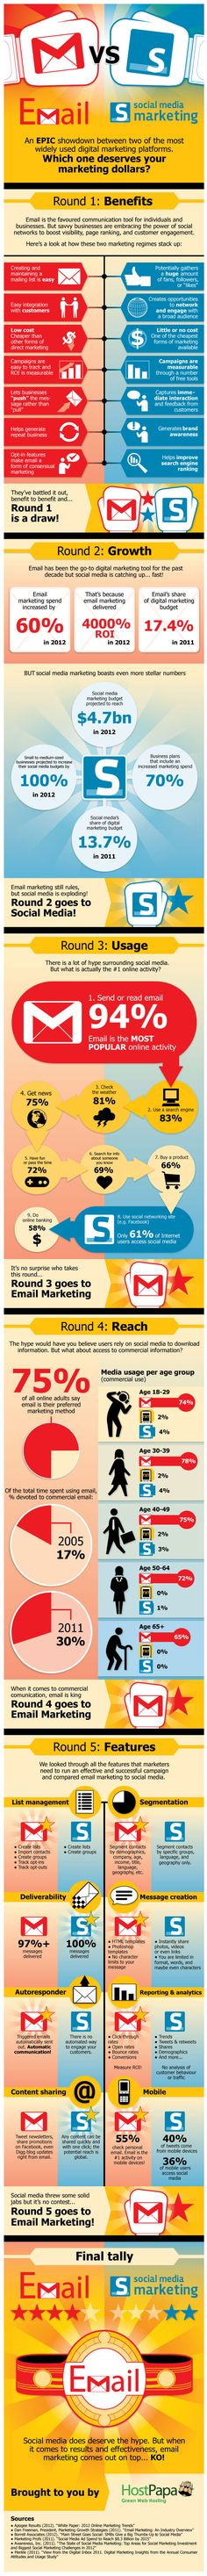 E-Mail Marketing & Social Media Marketing – Die Vor- und Nachteile (Infografik) Bakehouse curated Facebook tips for Yorkshire Marketers